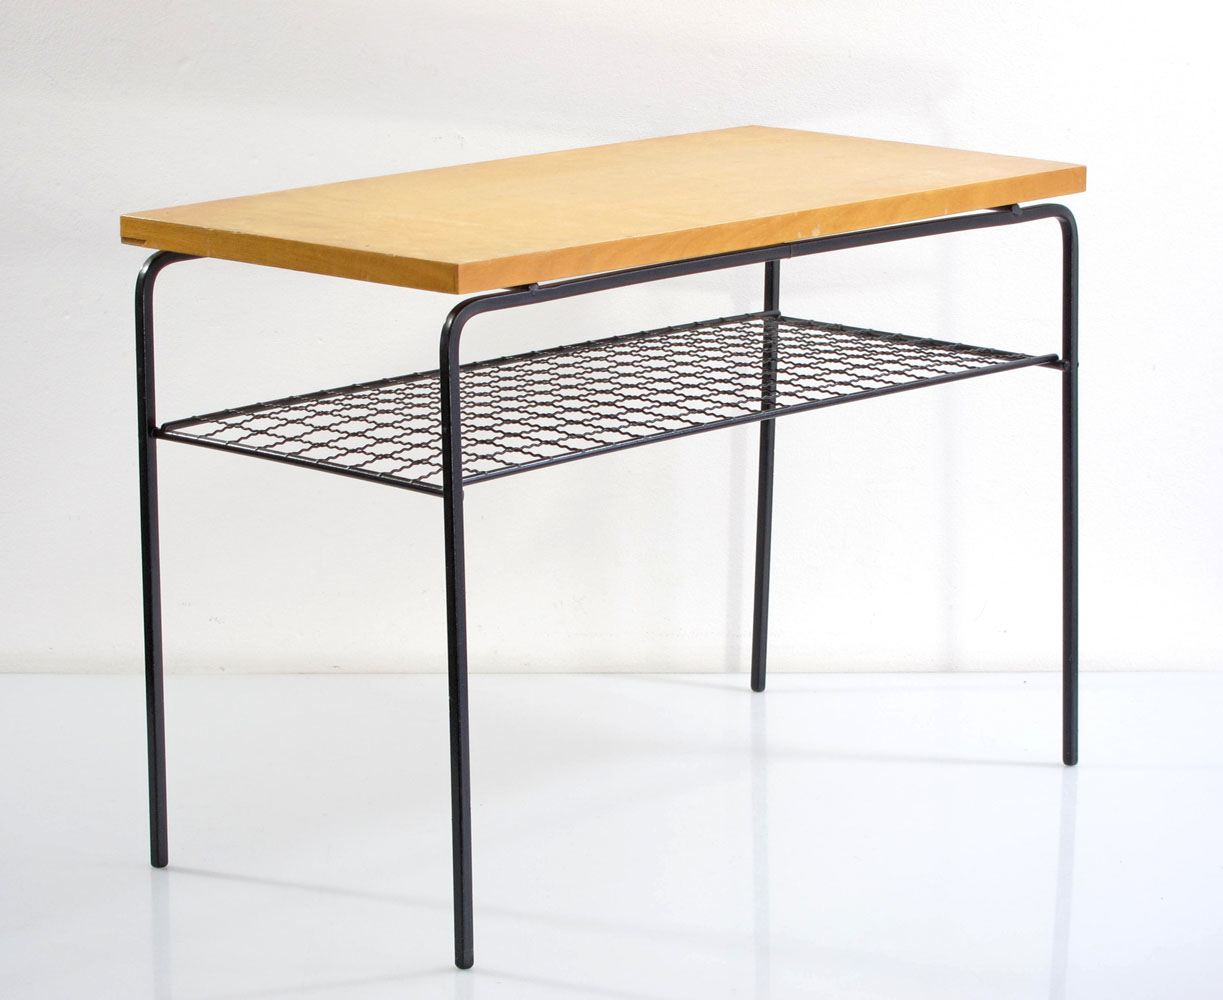 Vintage 50s side table by exqvisita style ab stockholm for Bom design furniture